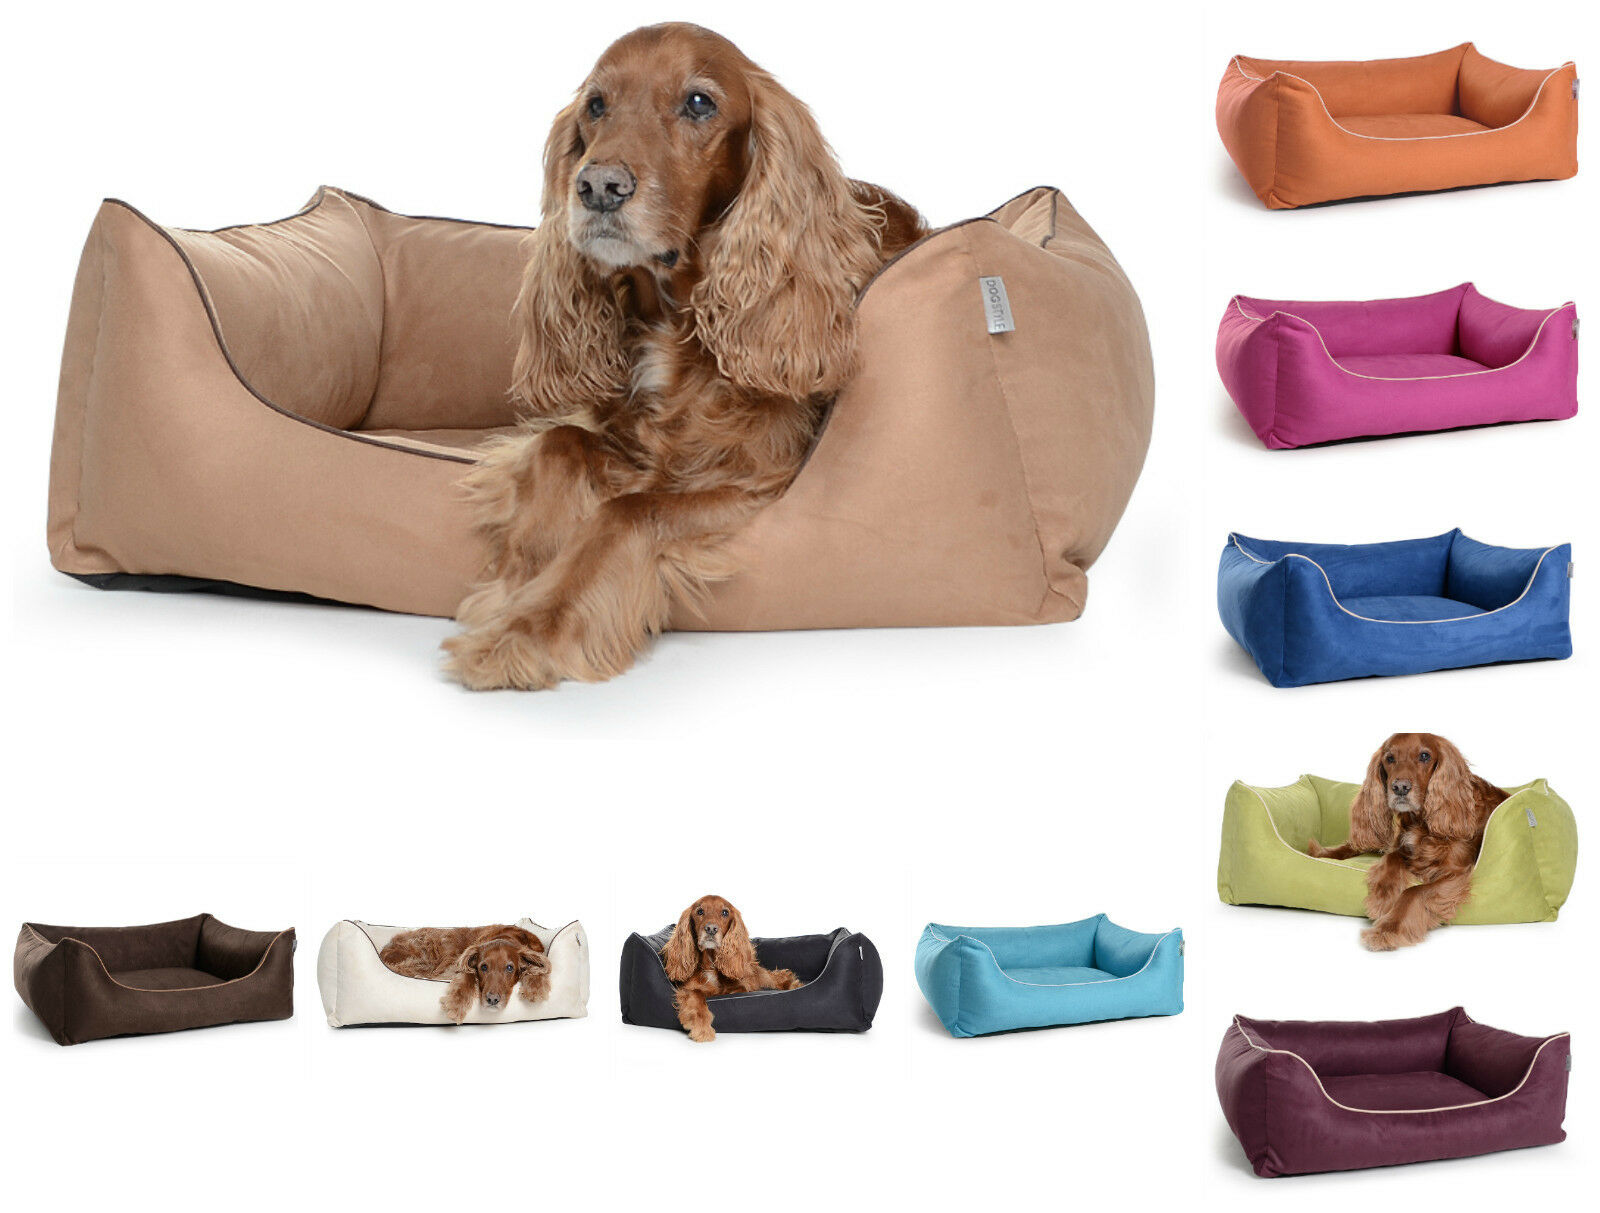 Mypado Hundebett Worldcollection Wildlederimitat Hundesofa Körbchen XS - XL